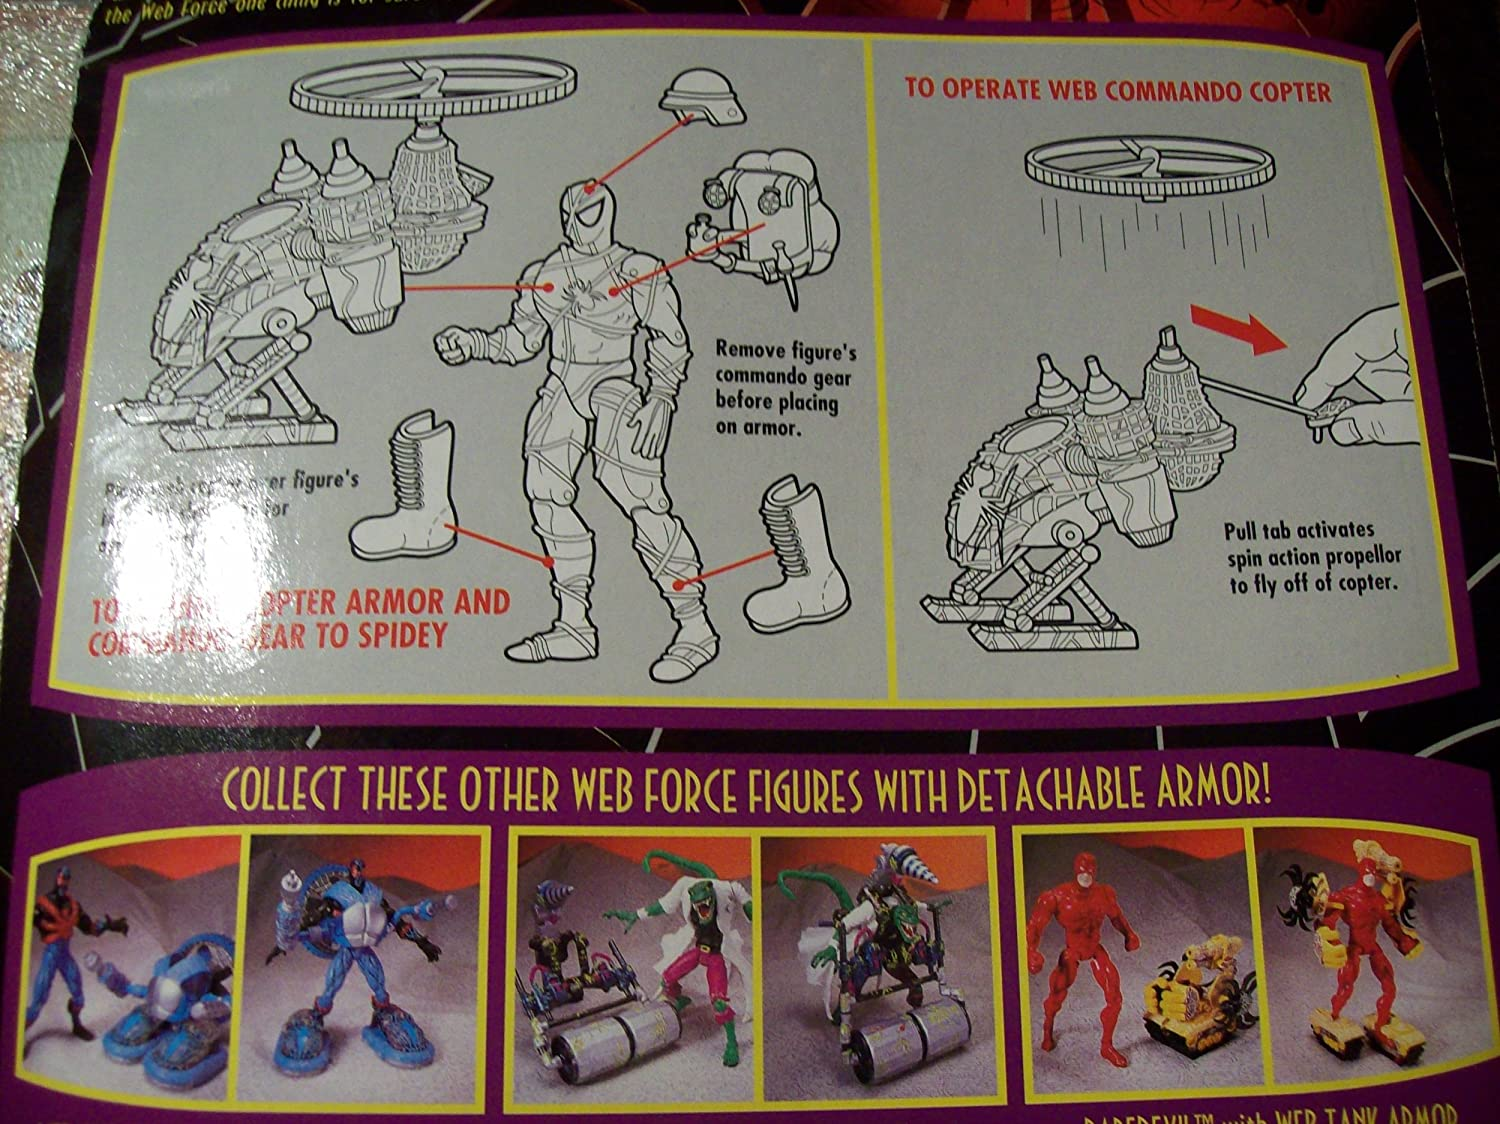 spider-man web force web commando spidey Free Delivery